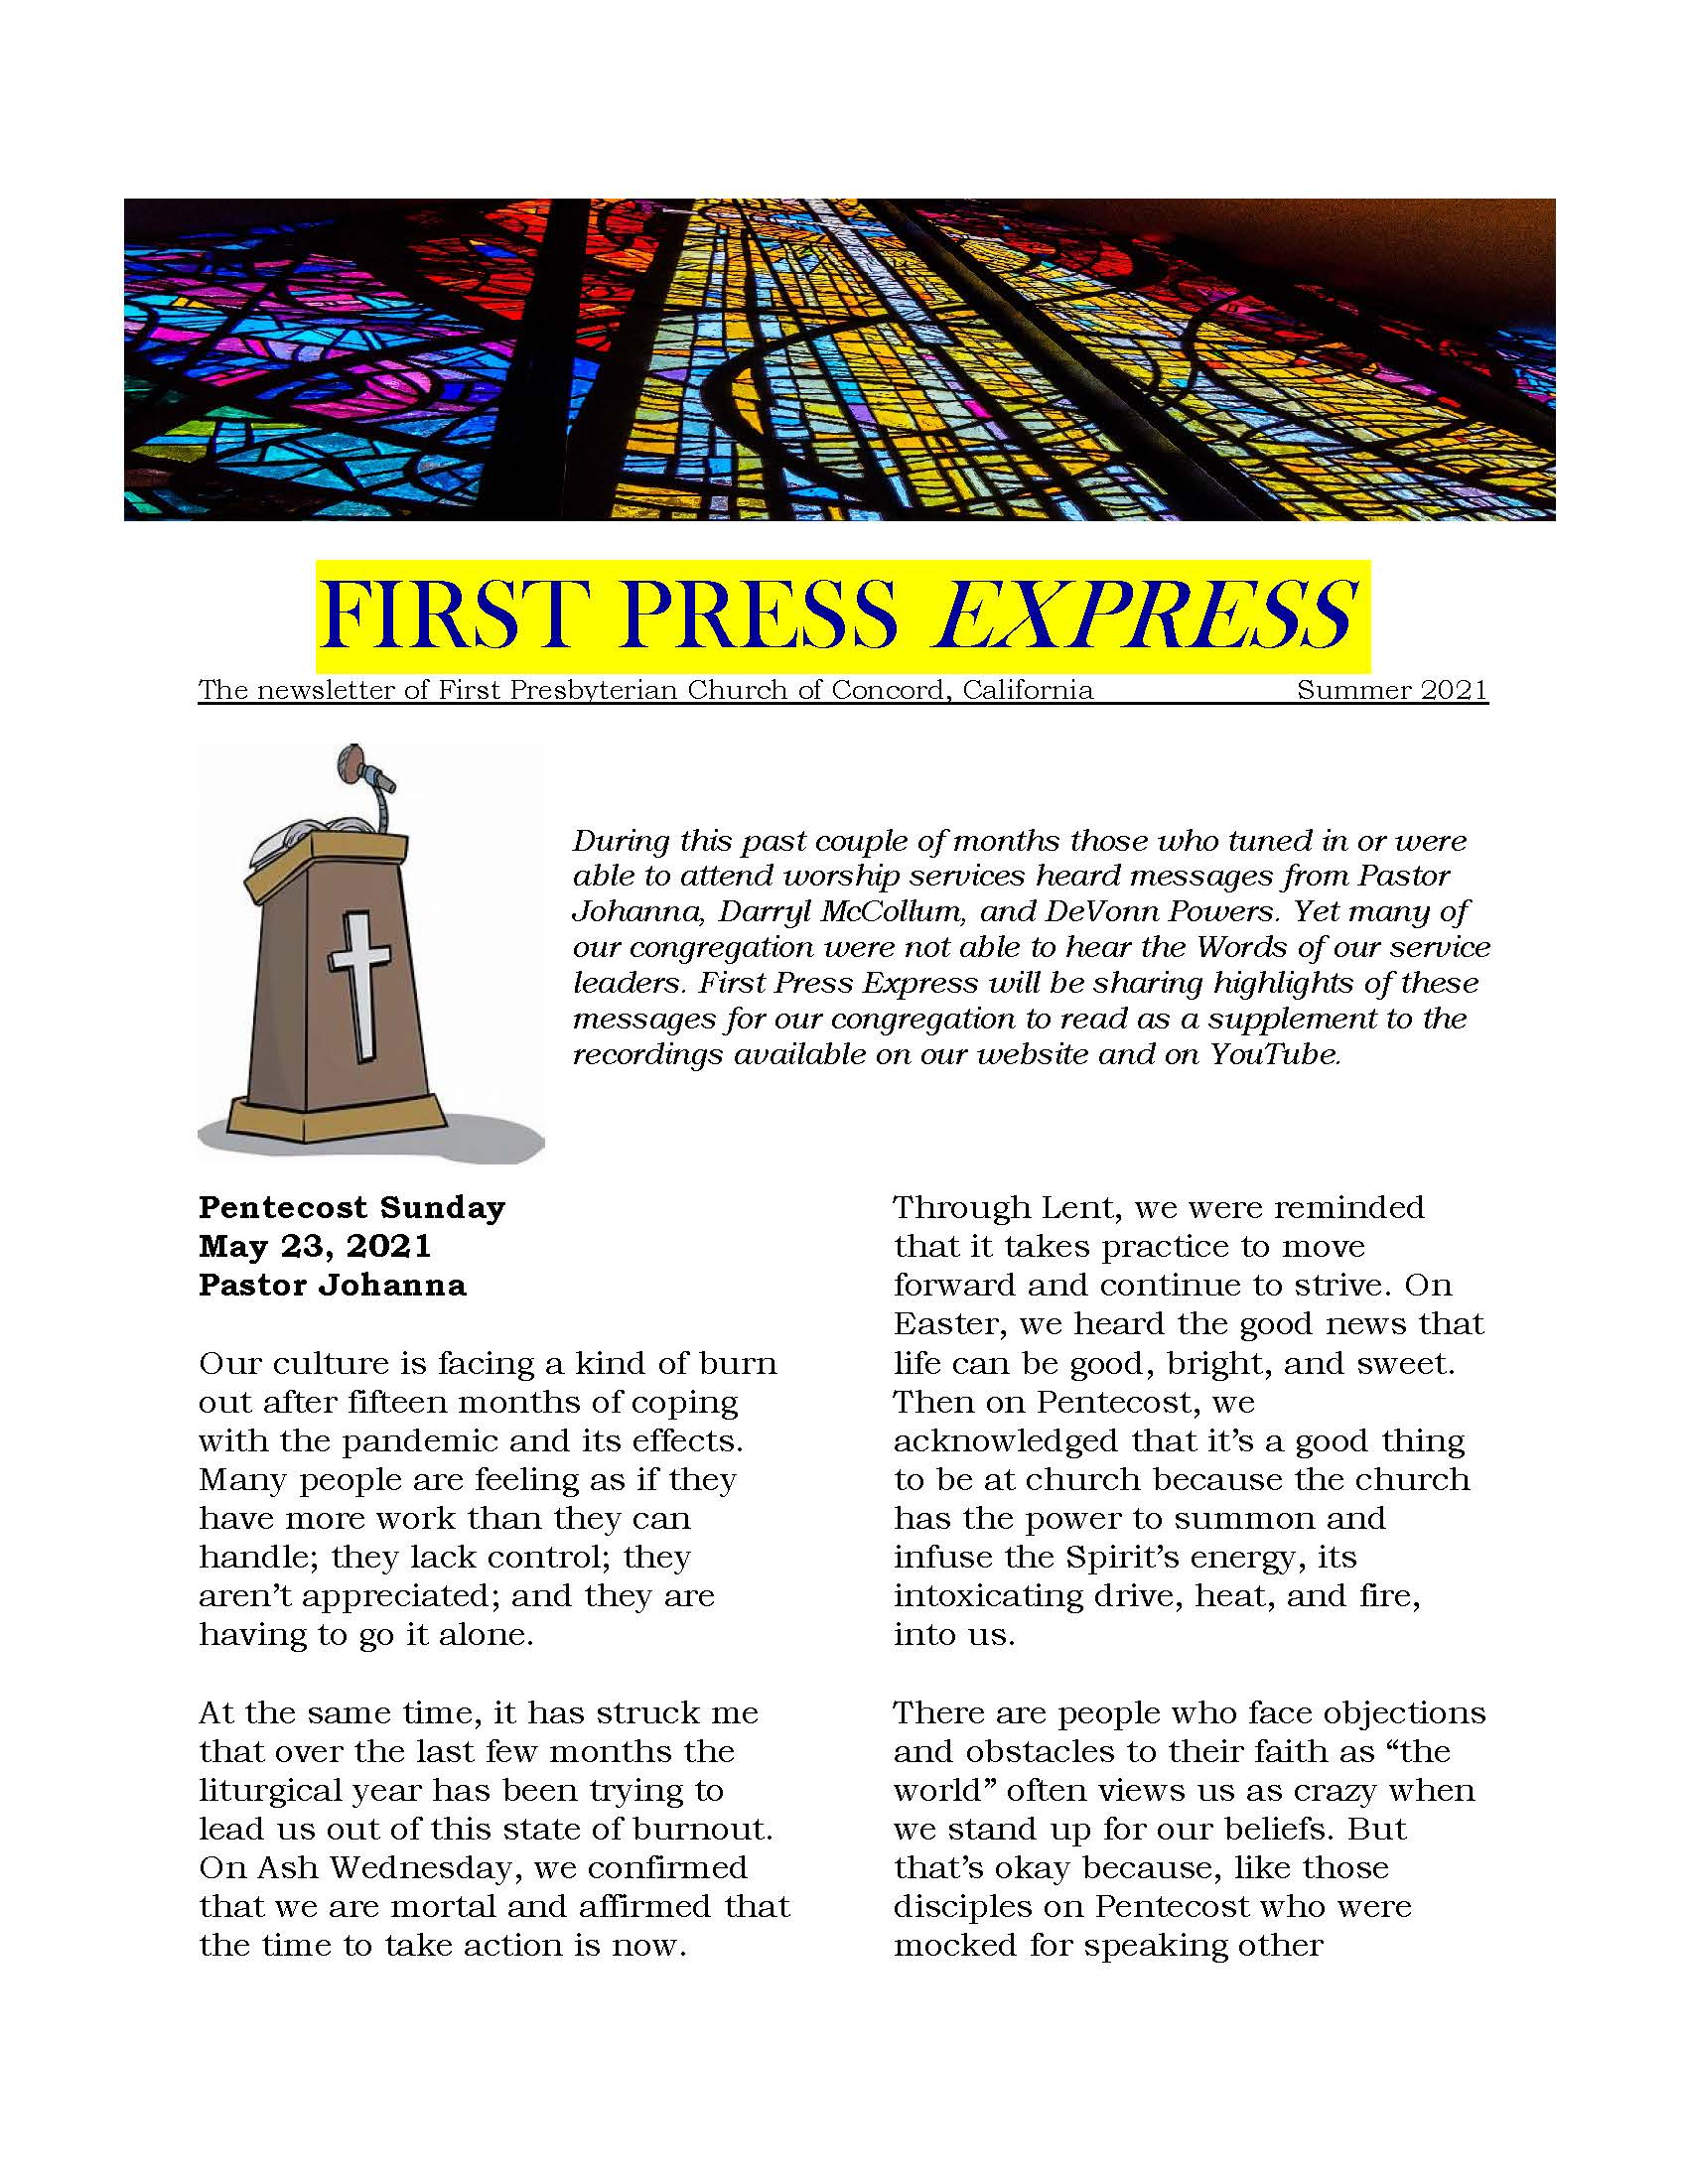 cover of First Press Express Summer 2021